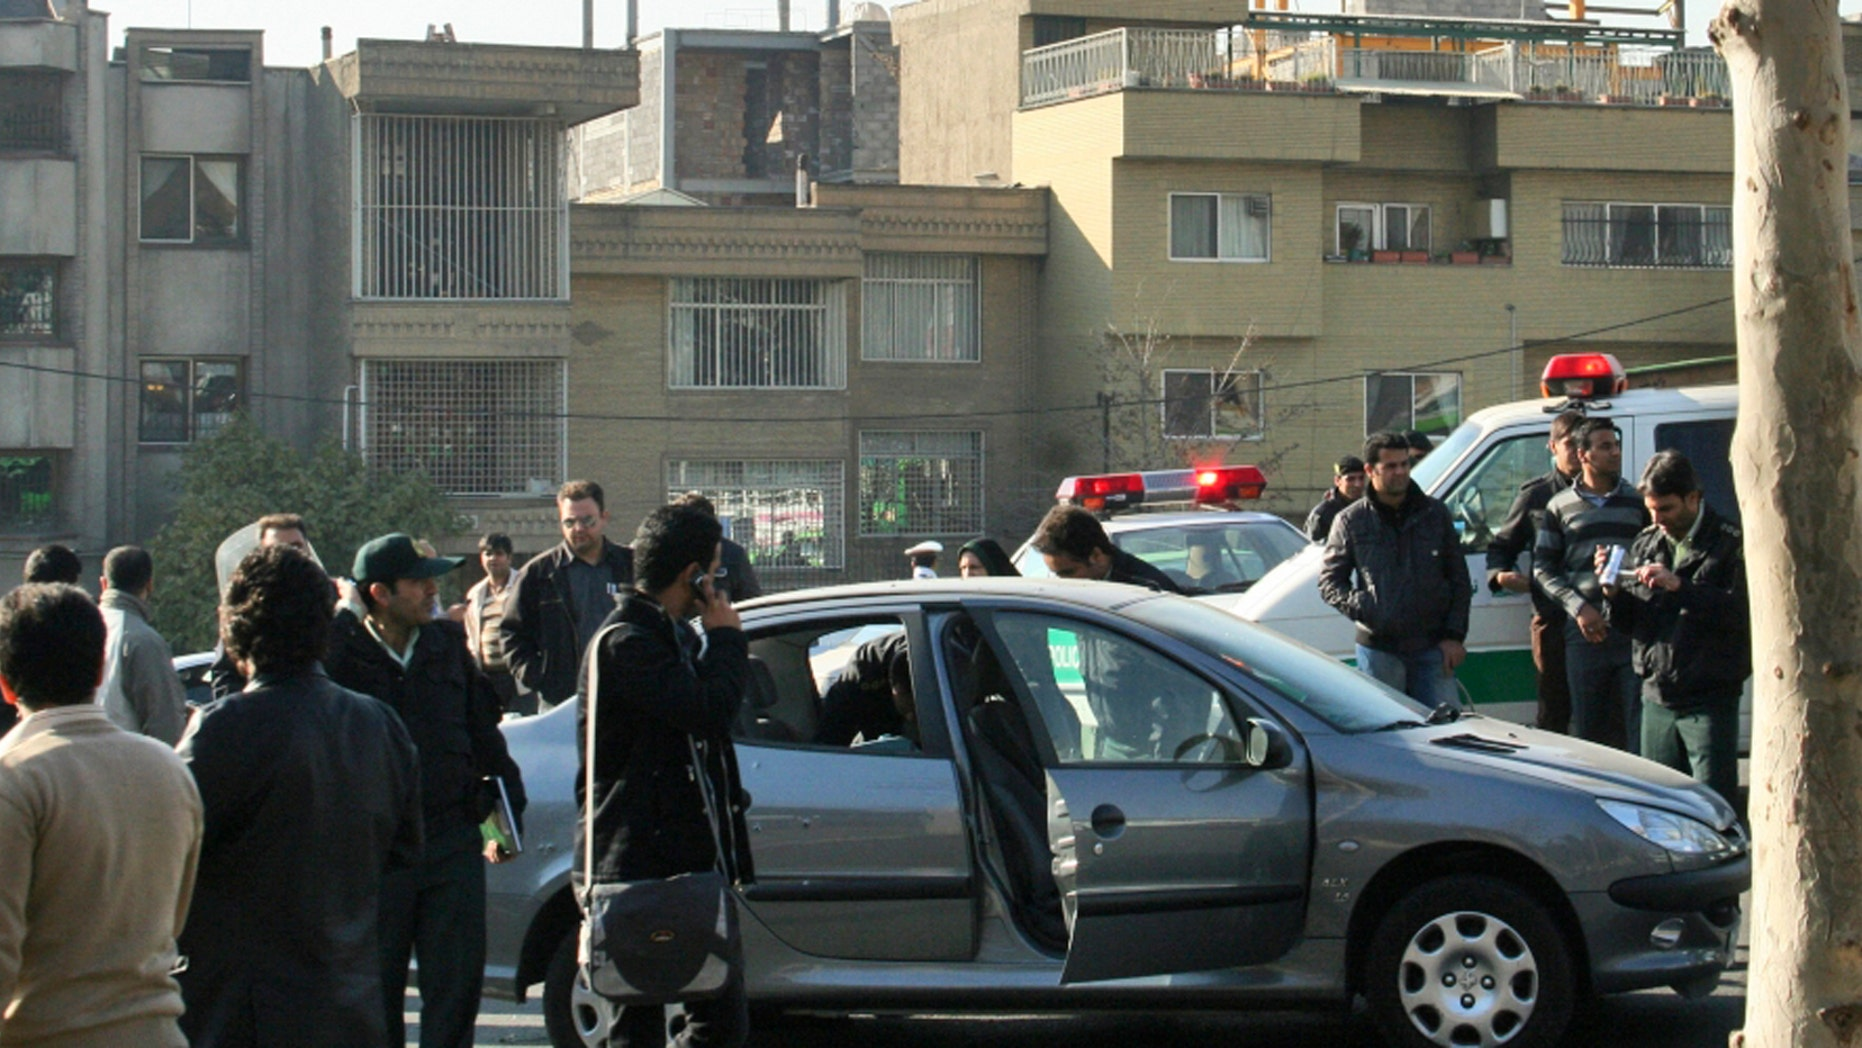 Nov. 29: This photo released by Fars News Agency is claimed by them to show one of the damaged cars following bomb attacks on the vehicles of two nuclear scientists in Tehran, Iran. State television reported assailants on motorcycles attached bombs to the two cars of two nuclear scientists as they were driving to work in Tehran, killing one and seriously wounding the other.